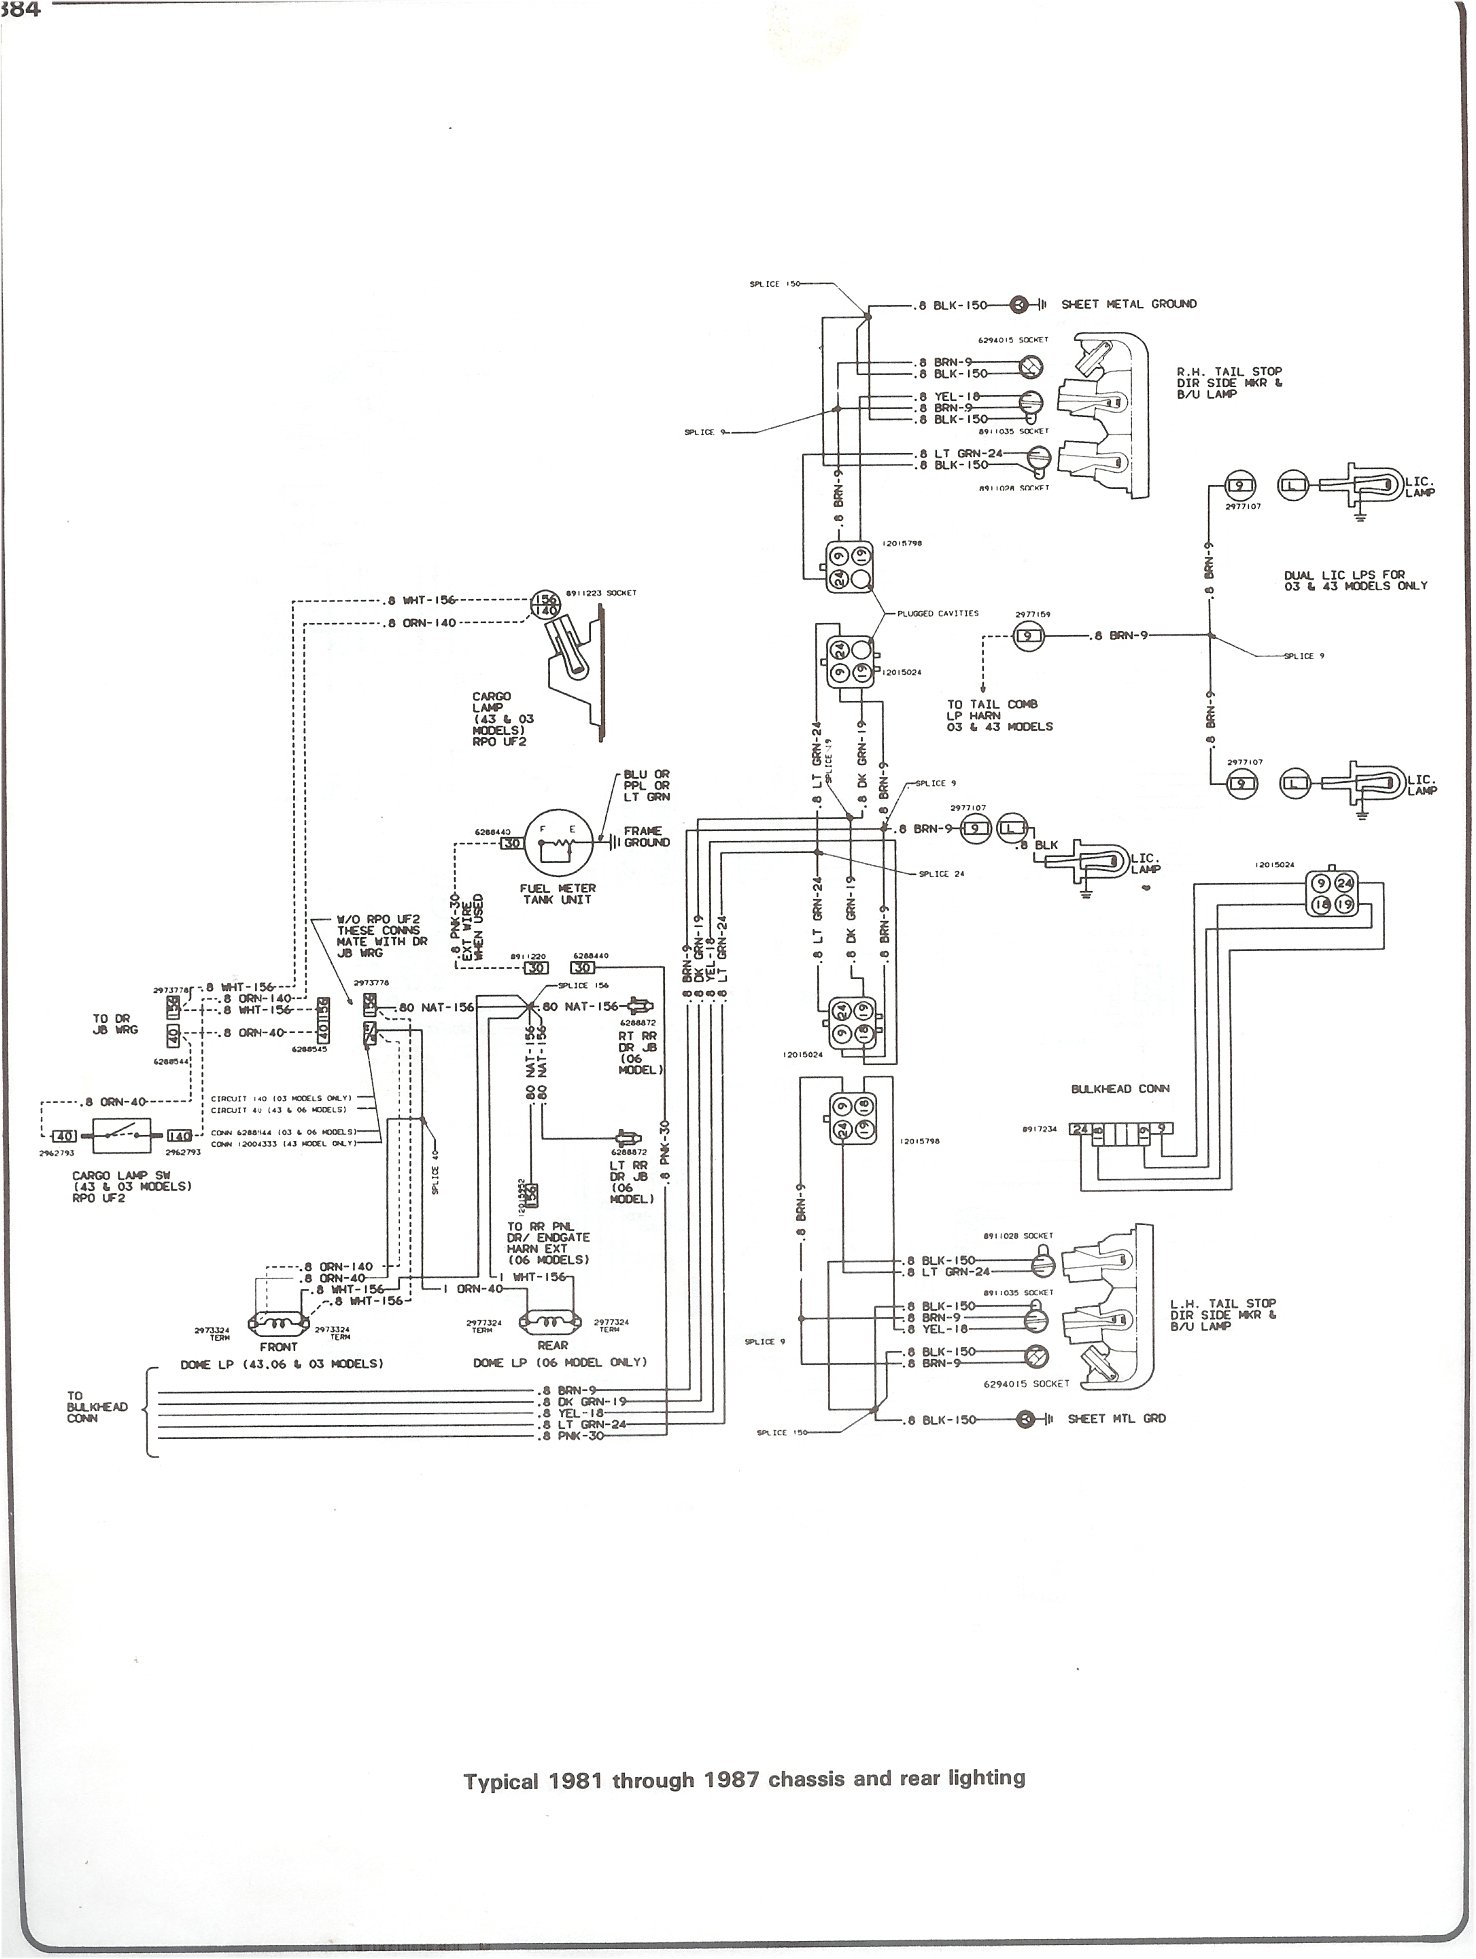 81 87_chass_rr_light complete 73 87 wiring diagrams 1999 chevy suburban wiring diagram at sewacar.co